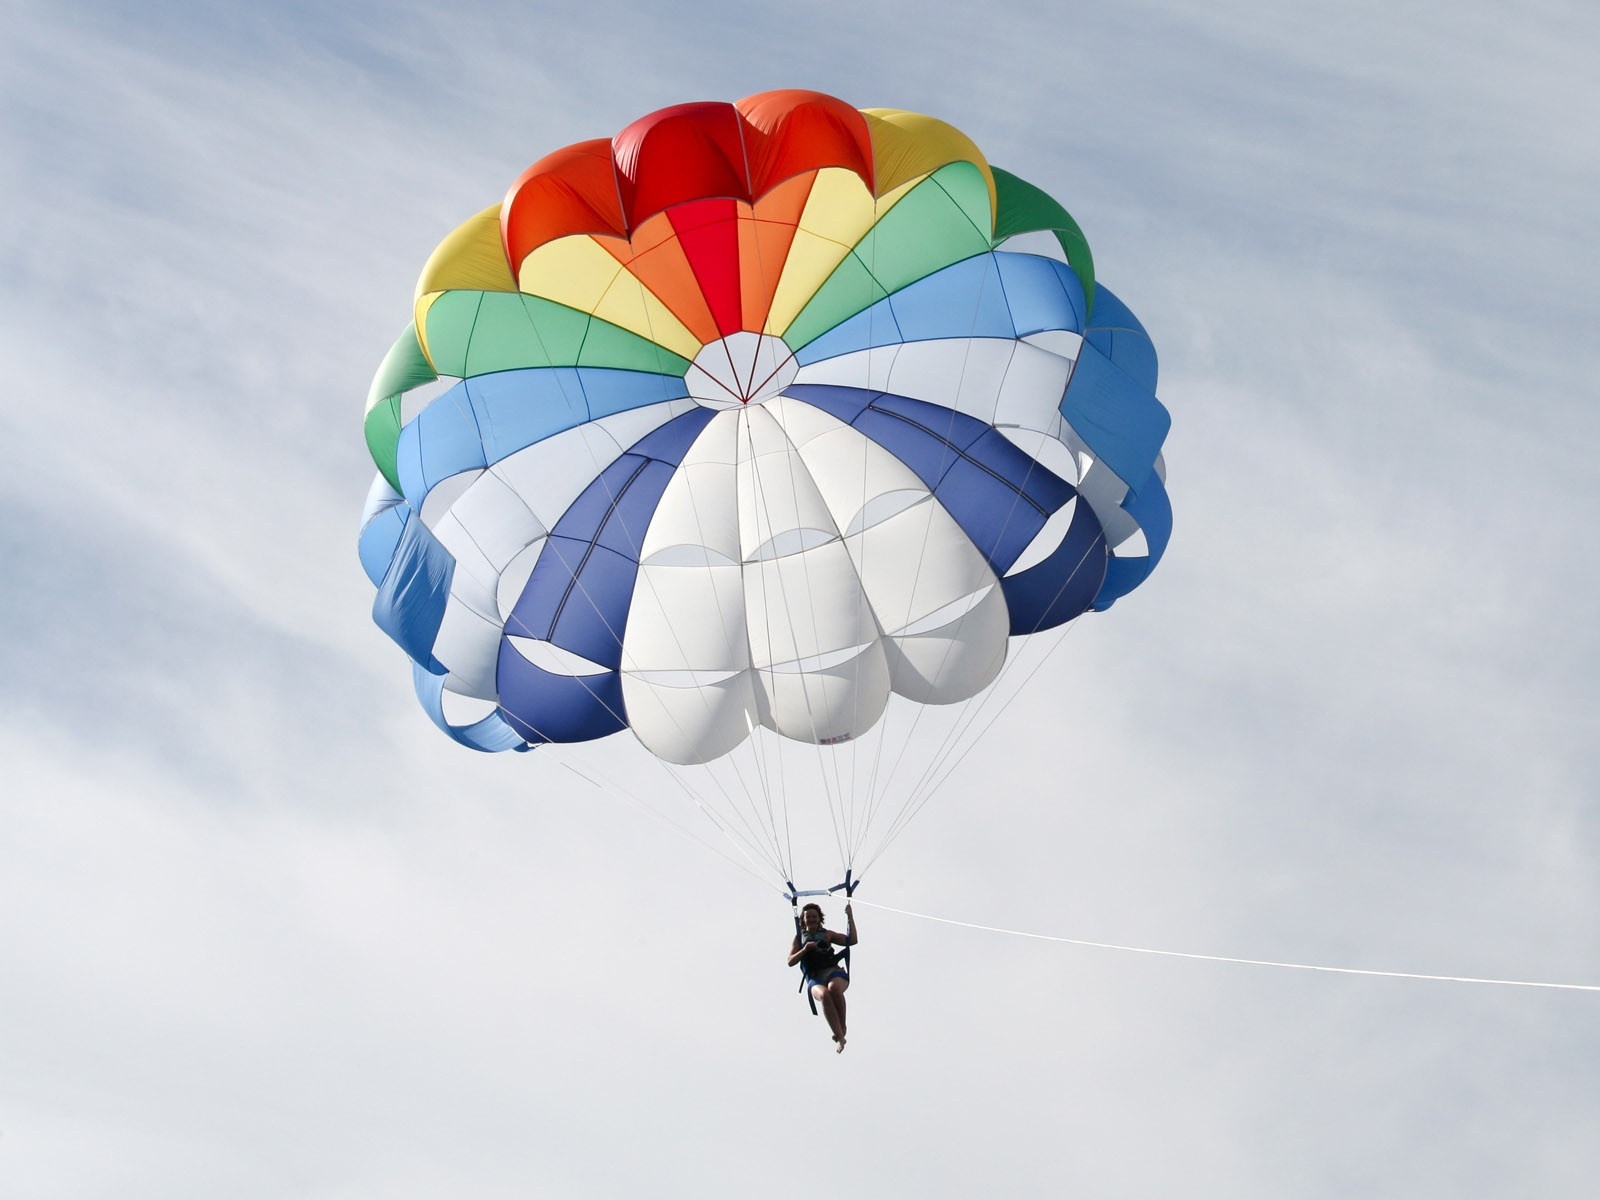 Who is packing your parachute? - VersionPB